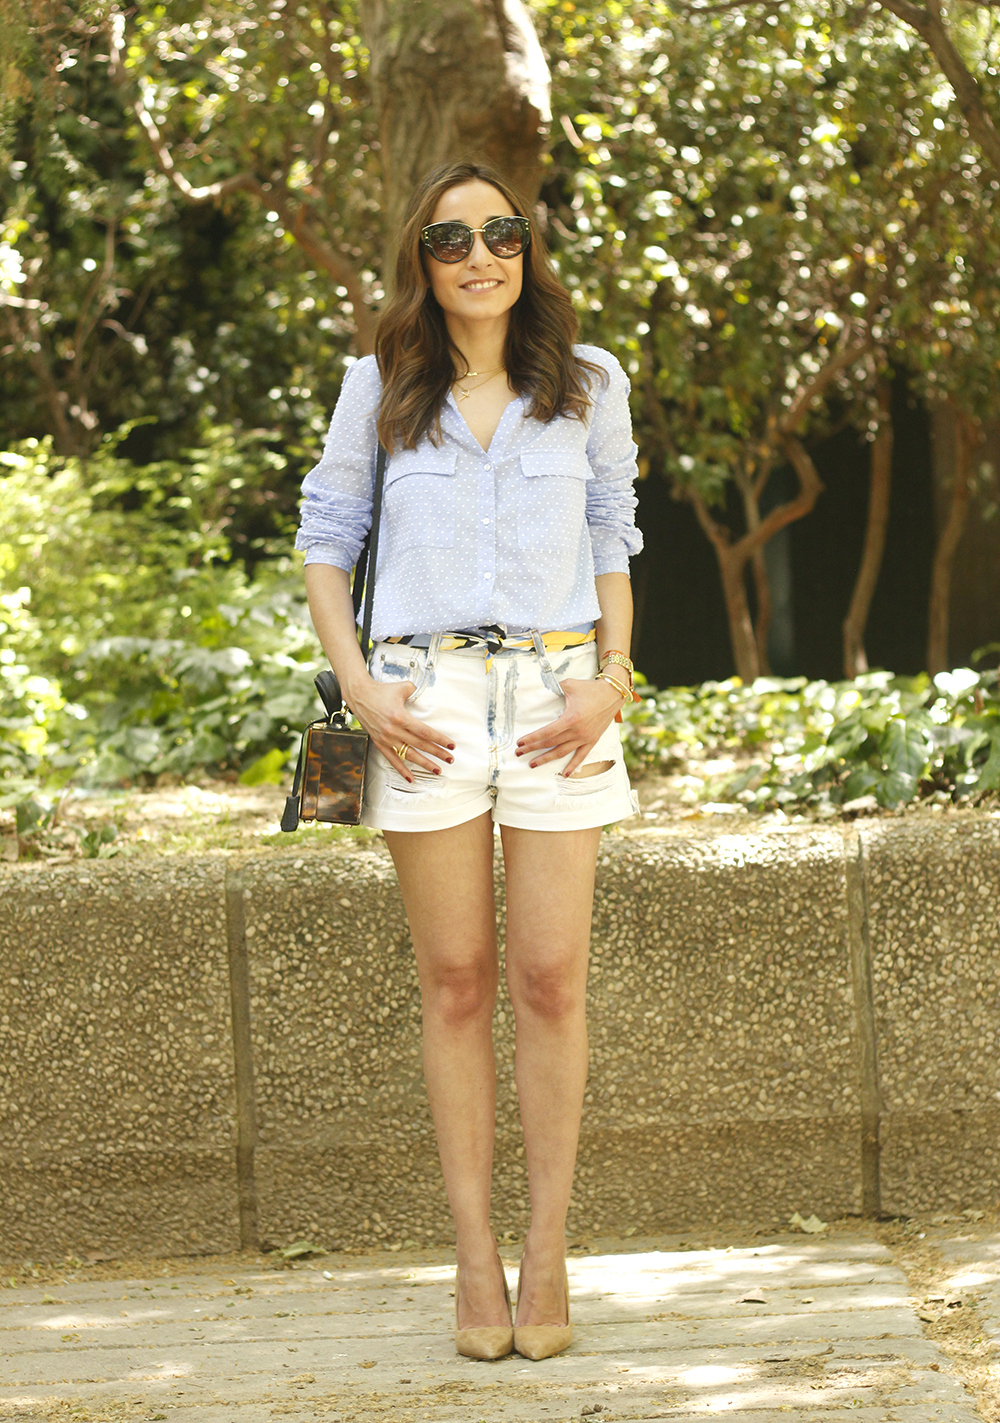 Denim Shorts Carey Bag uterqüe shirt with dots sunnies outfit style fashion16